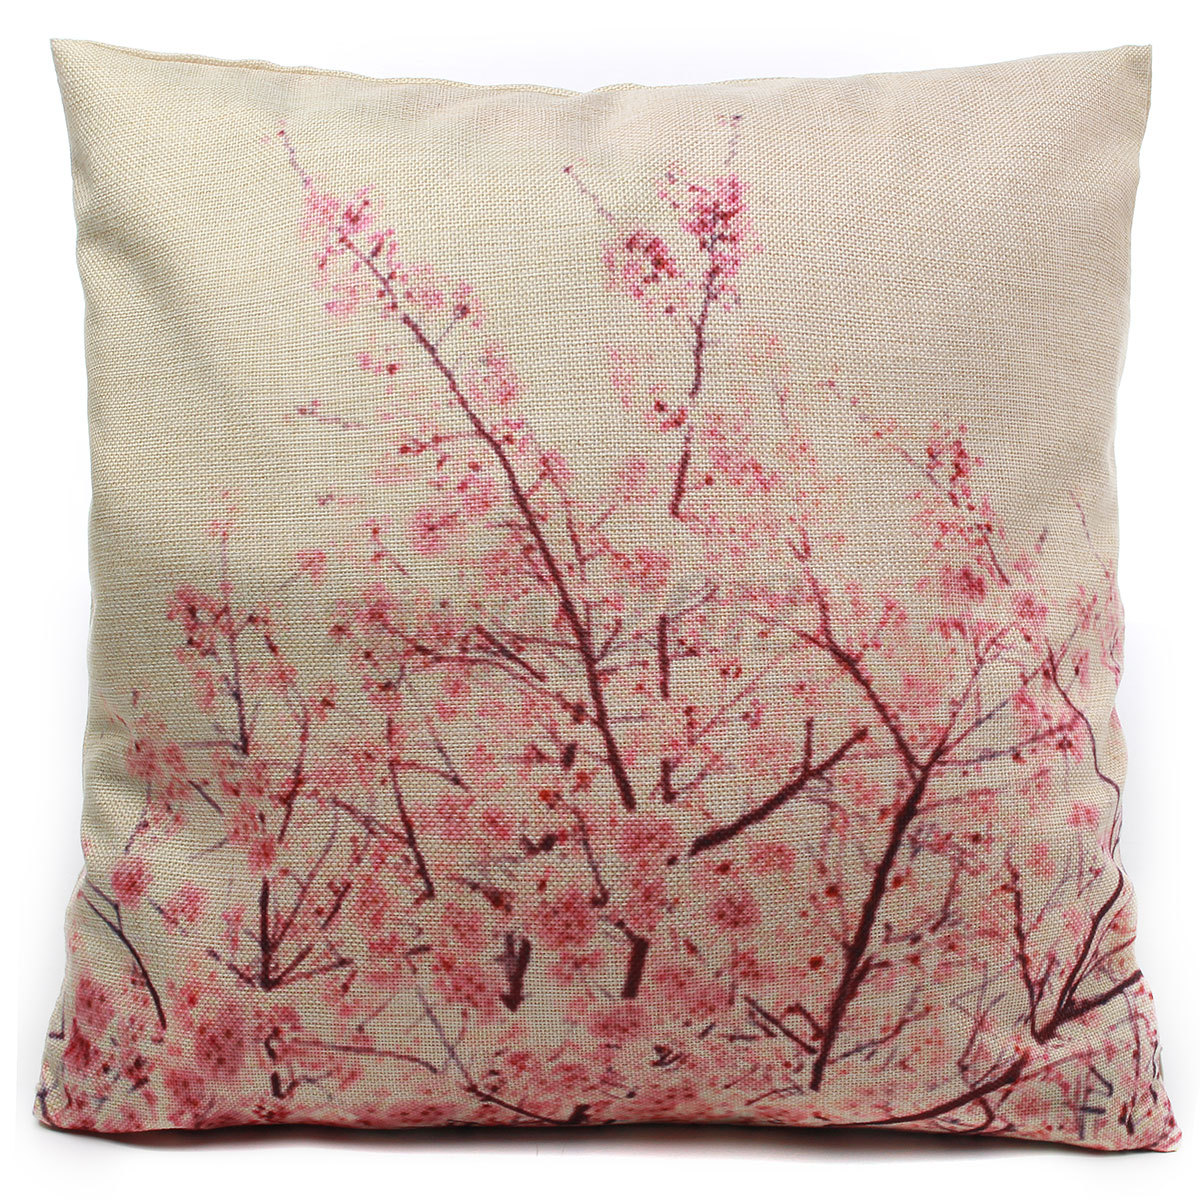 Cotton Linen Leaf Throw Pillow Case Cover Bed Sofa Pack Cushion Home Decor eBay